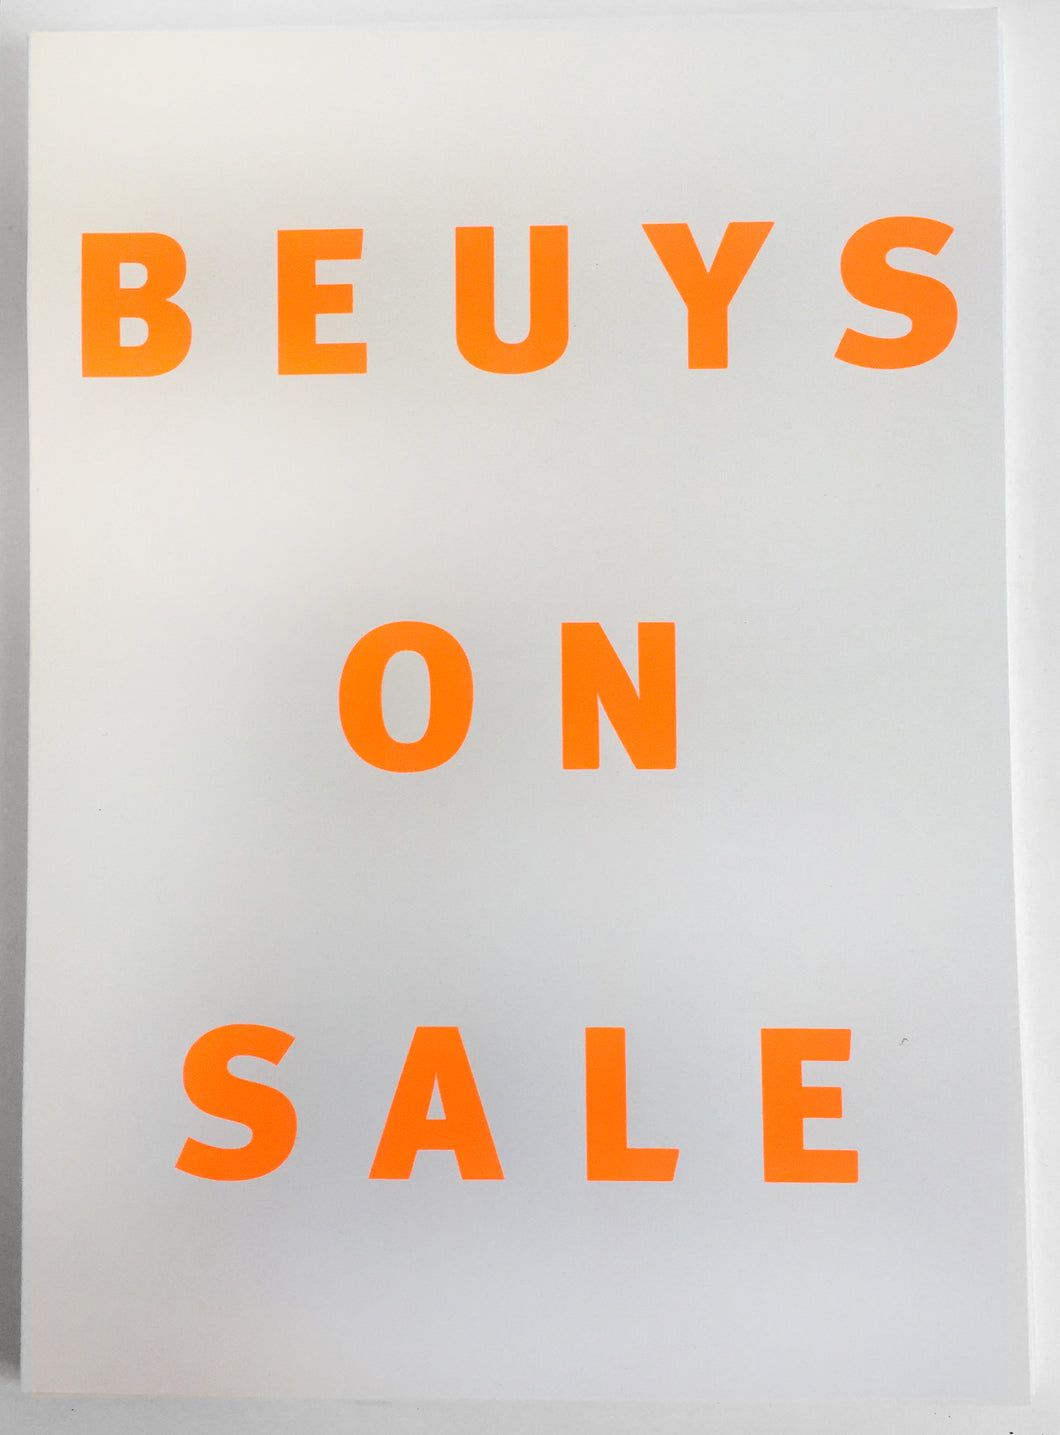 Beuys on Sale screen print | Gfeller & Hellsgård